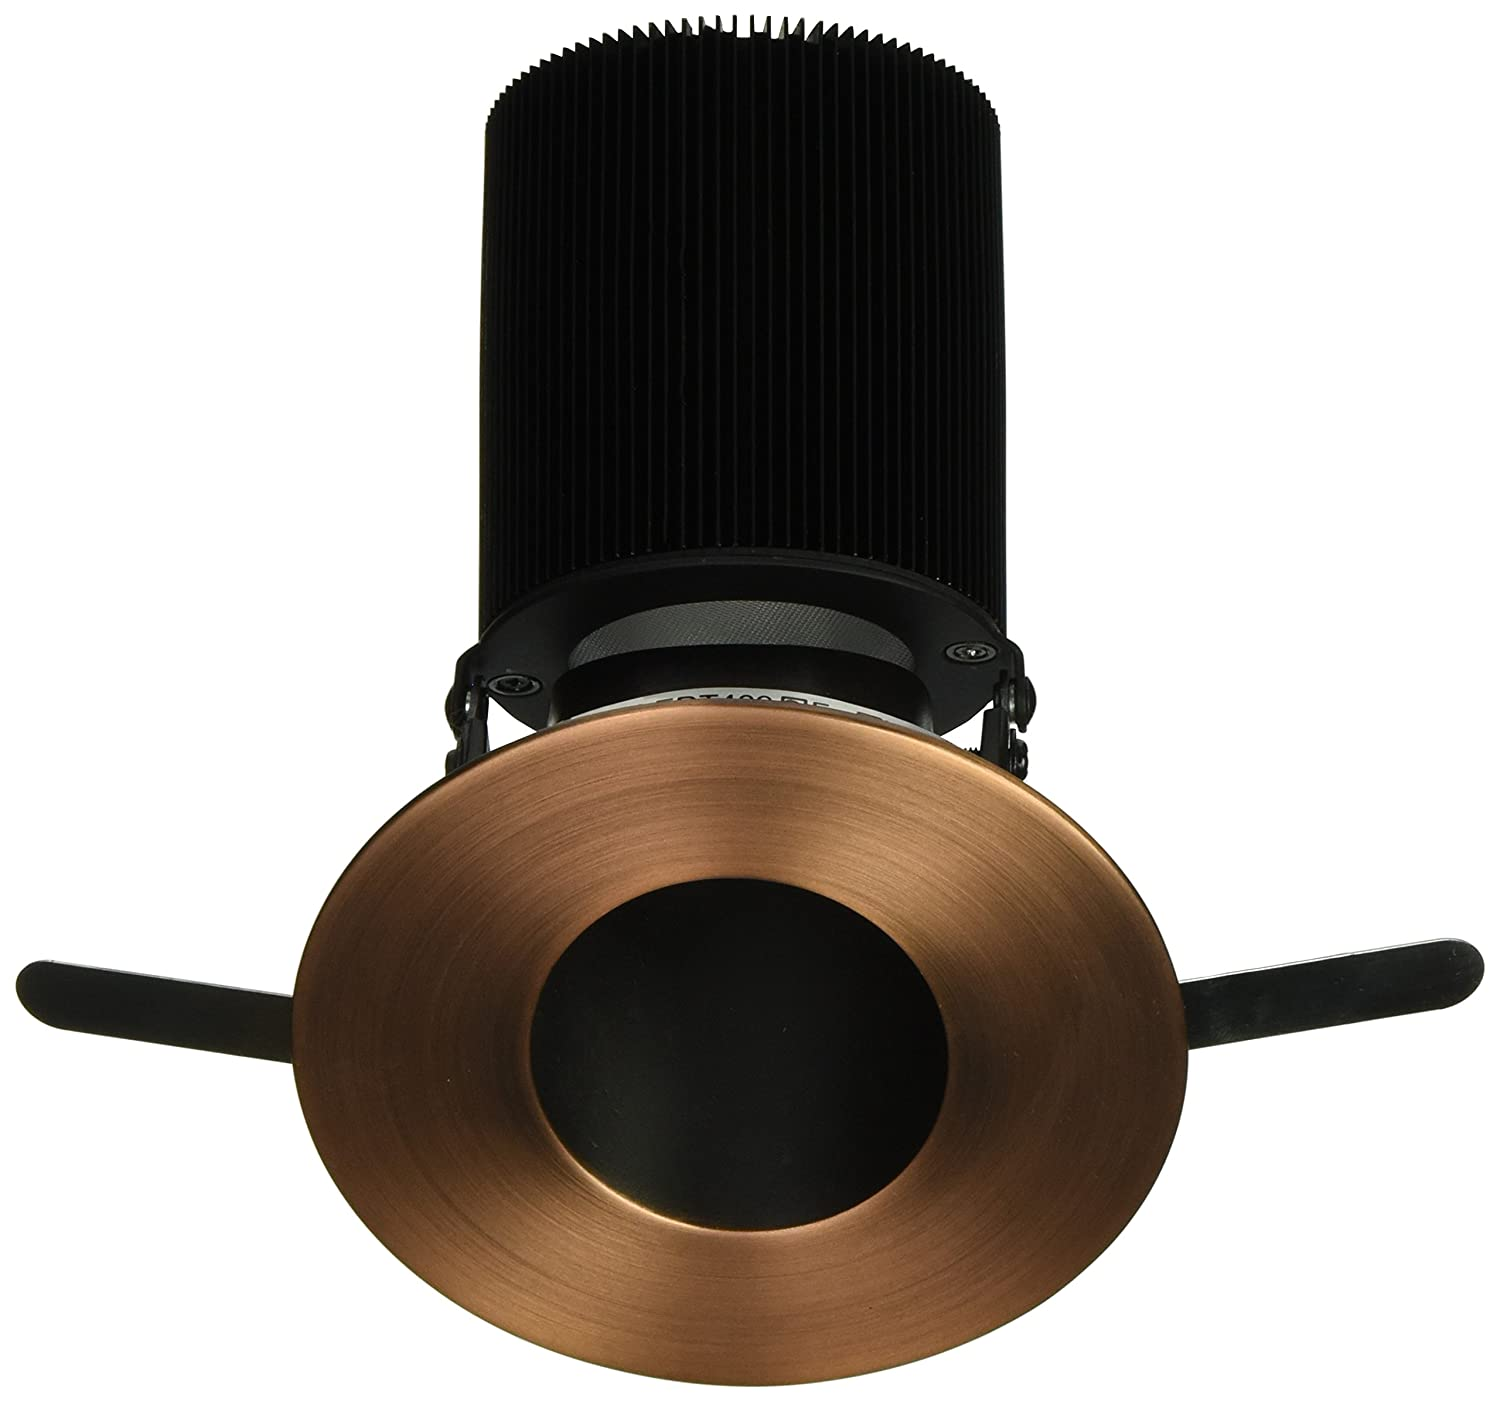 WAC Lighting HR-2LED-T409F-35CB Tesla Cool Light 3500K LED 2-Inch Adjustable 30-Degree to 45-Degree Round Trim with 45-Degree Beam Angle